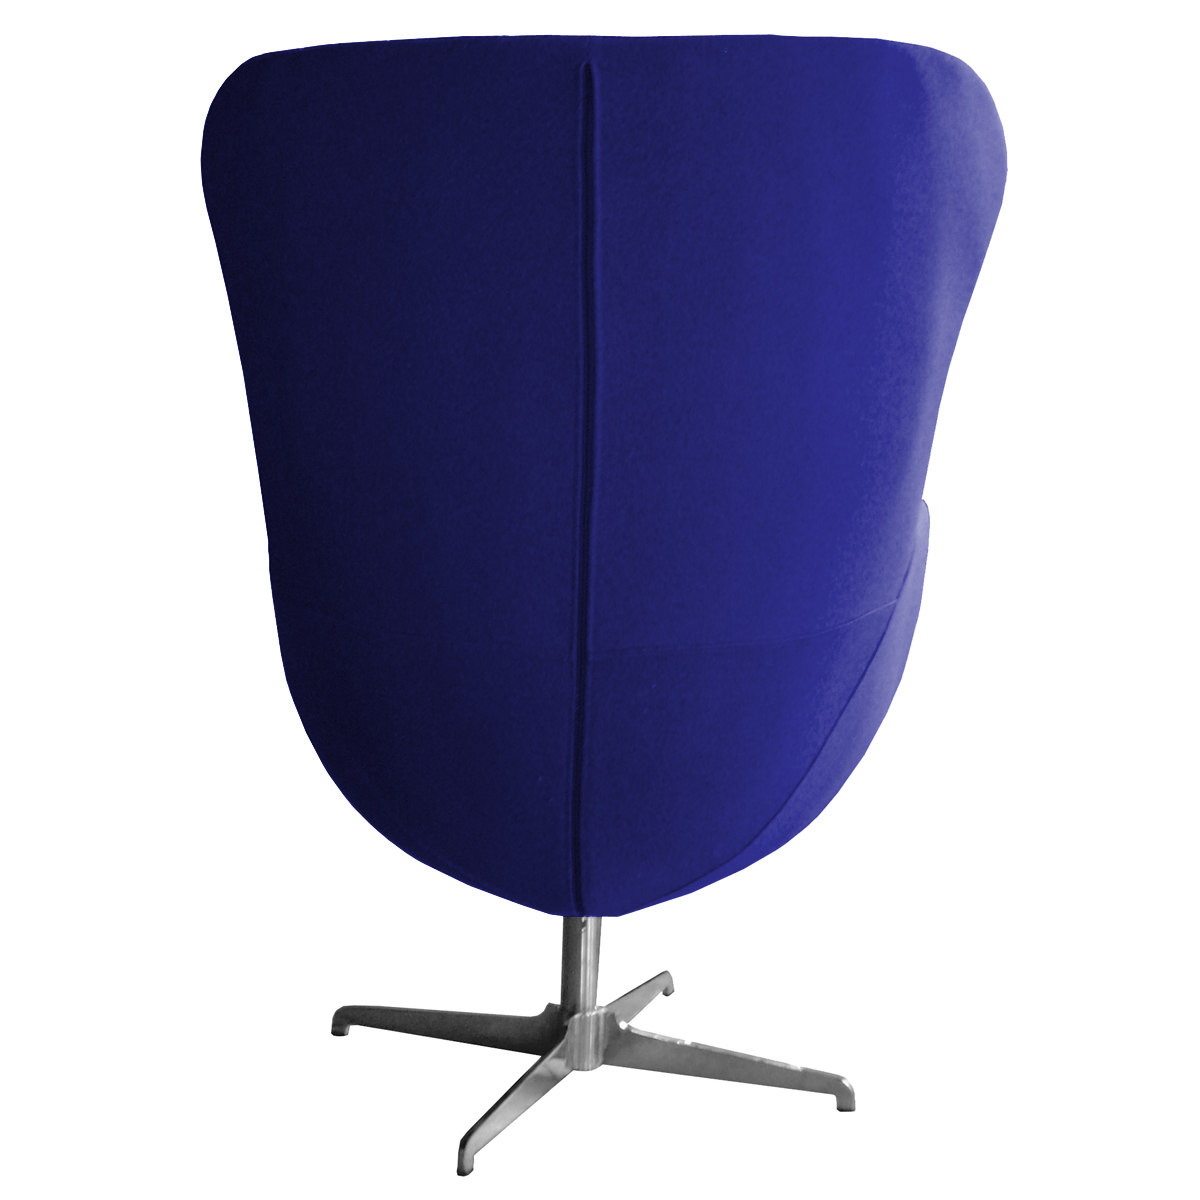 blue egg chair armless ikea retro arne jacobsen inspired designer swivel wool